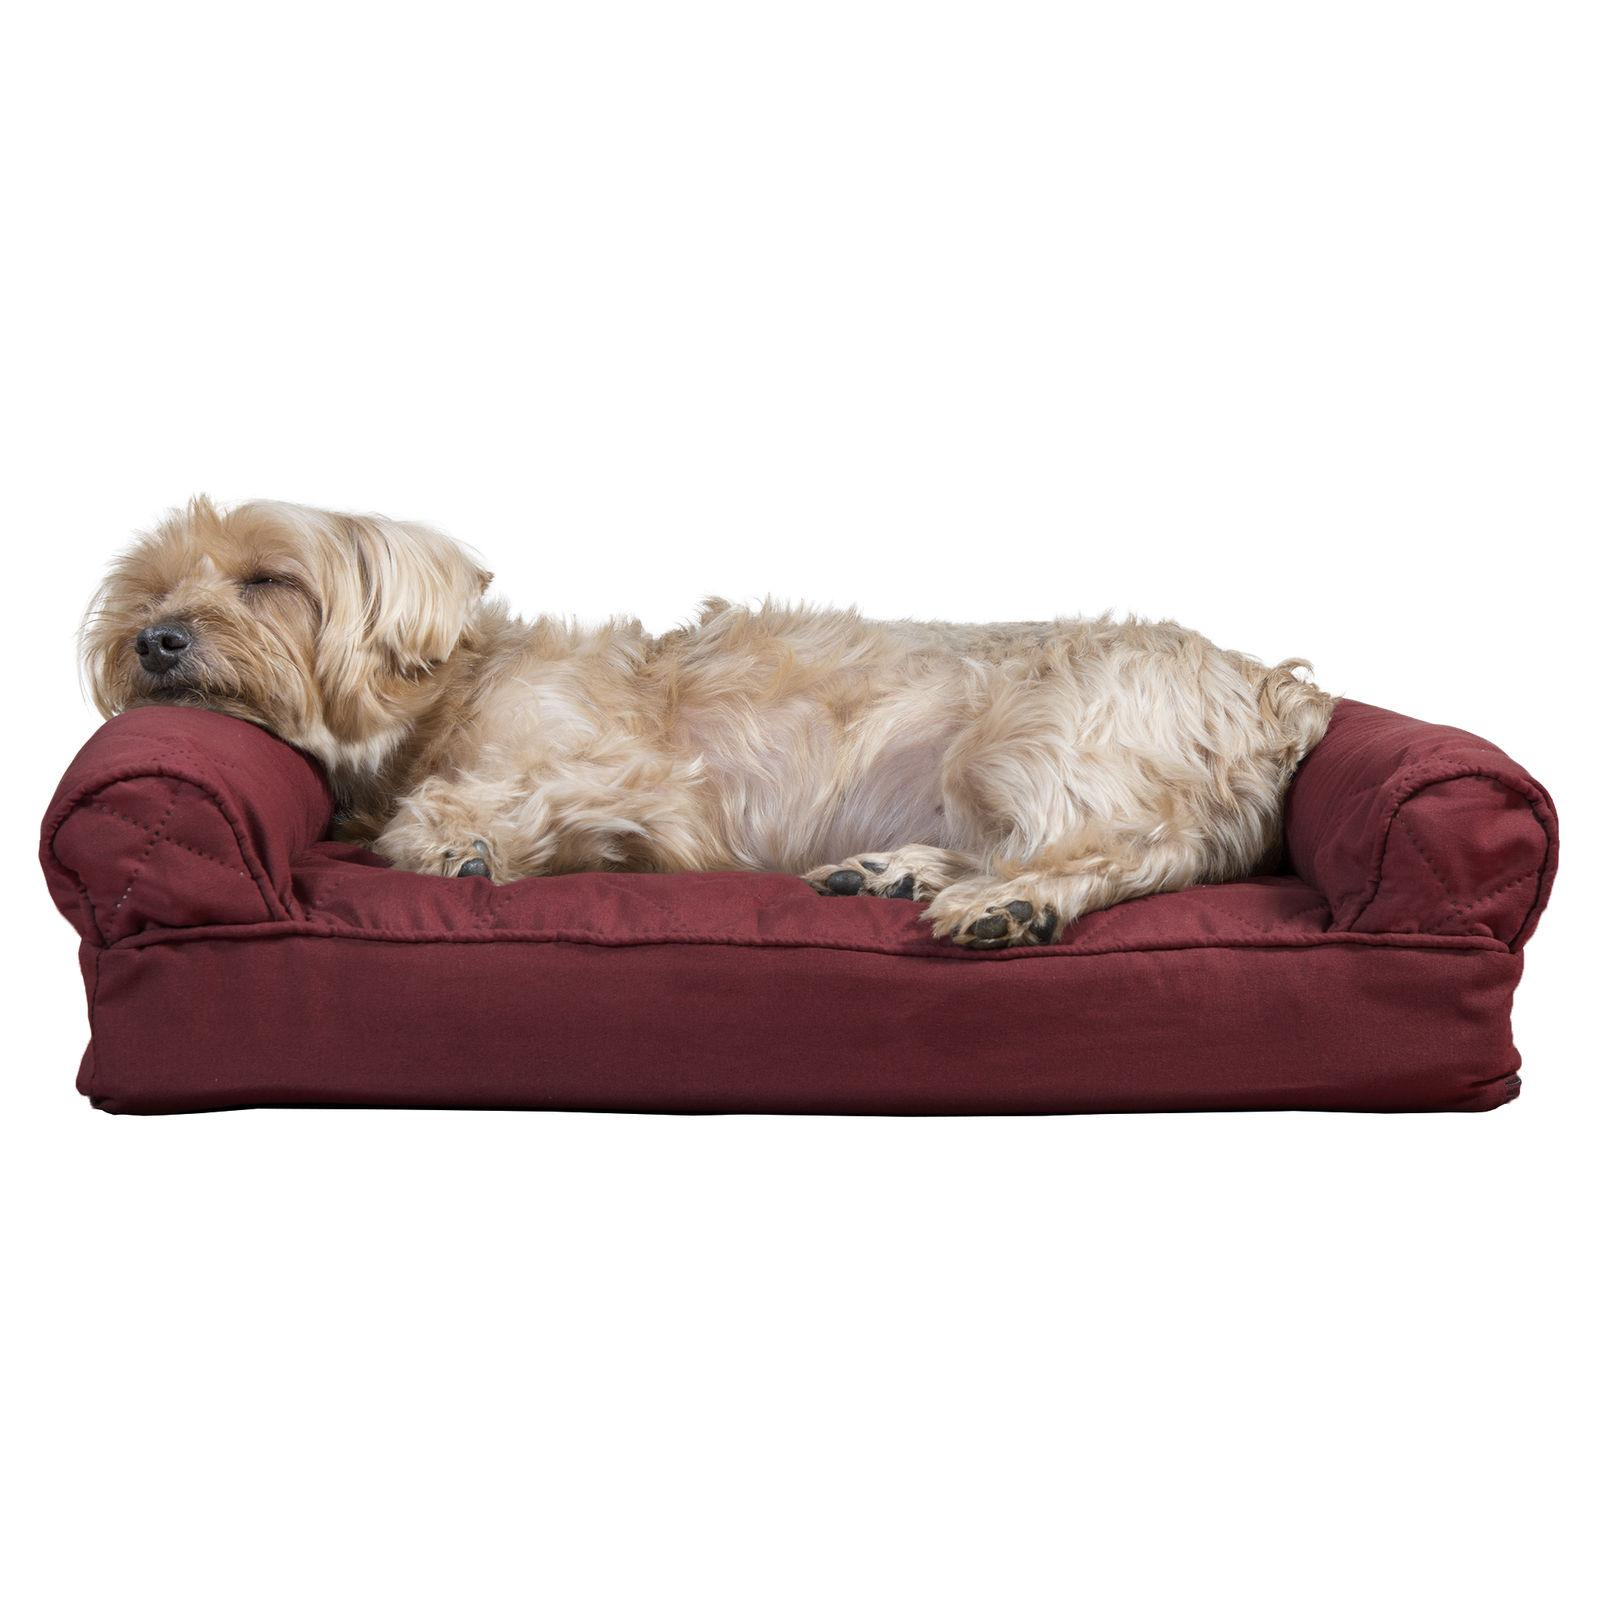 FurHaven Pillow Dog Bed